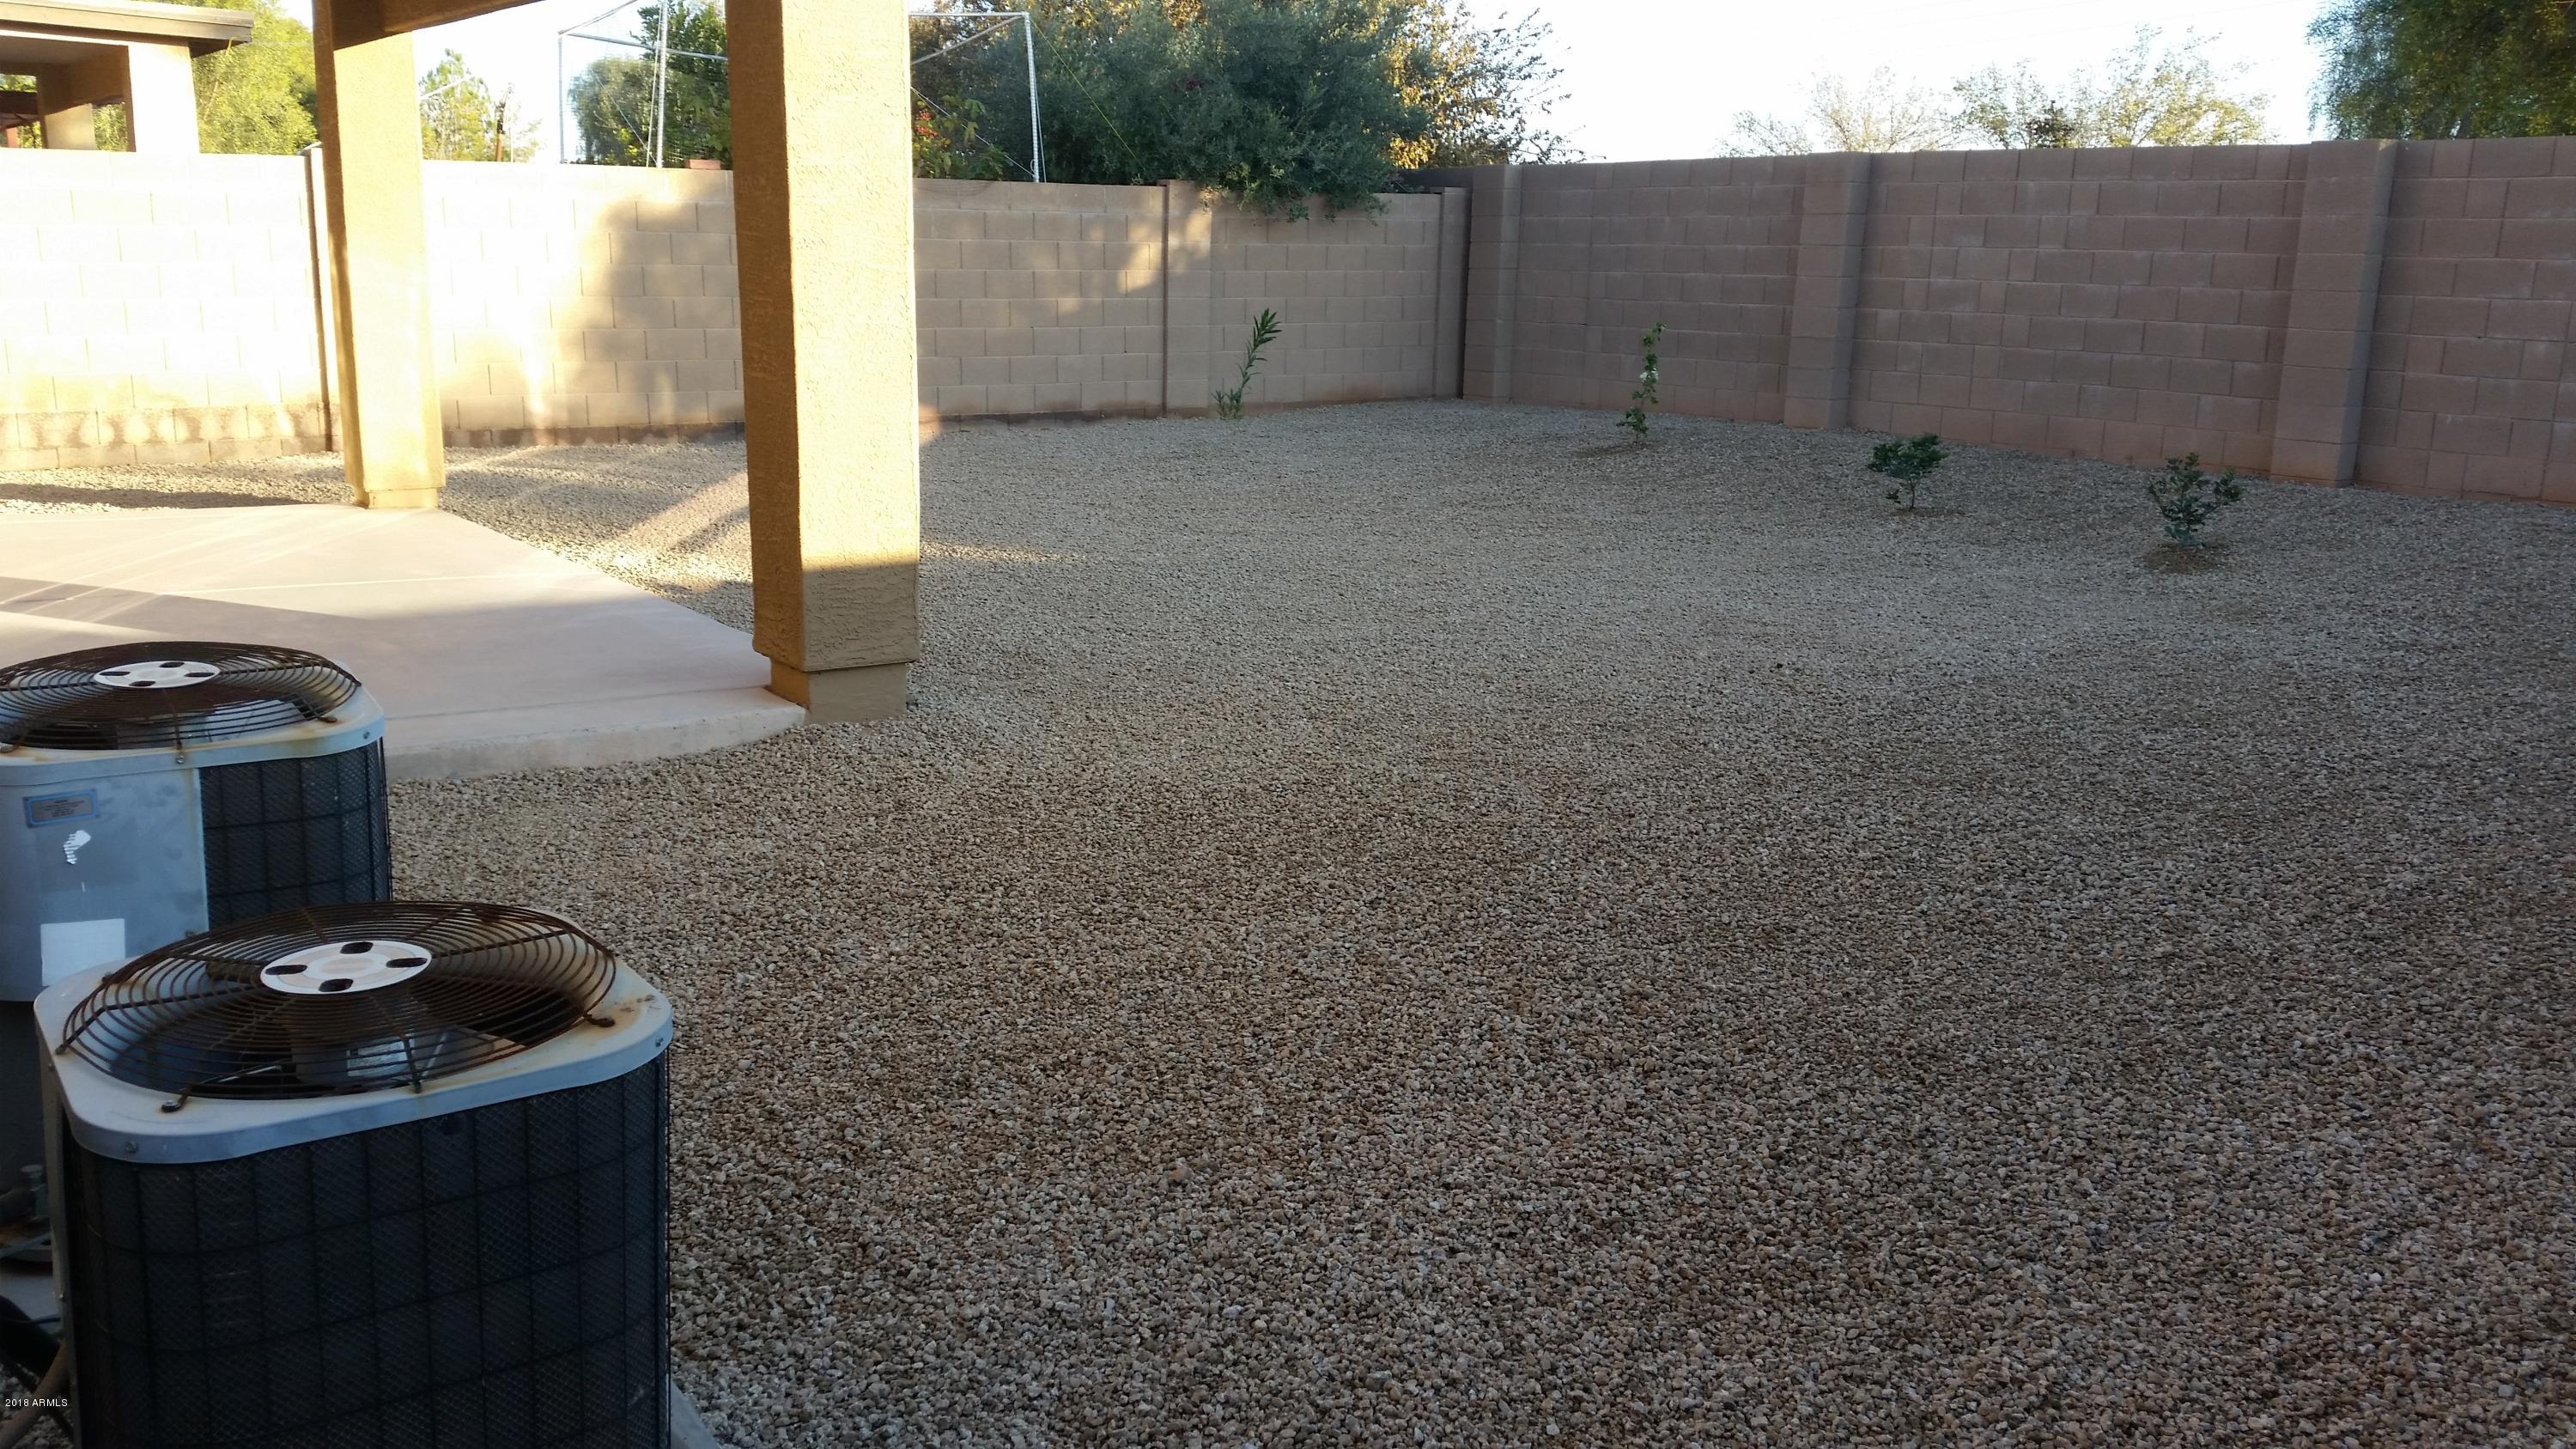 MLS 5852554 1649 W COOLIDGE Way, Coolidge, AZ 85128 Coolidge AZ REO Bank Owned Foreclosure